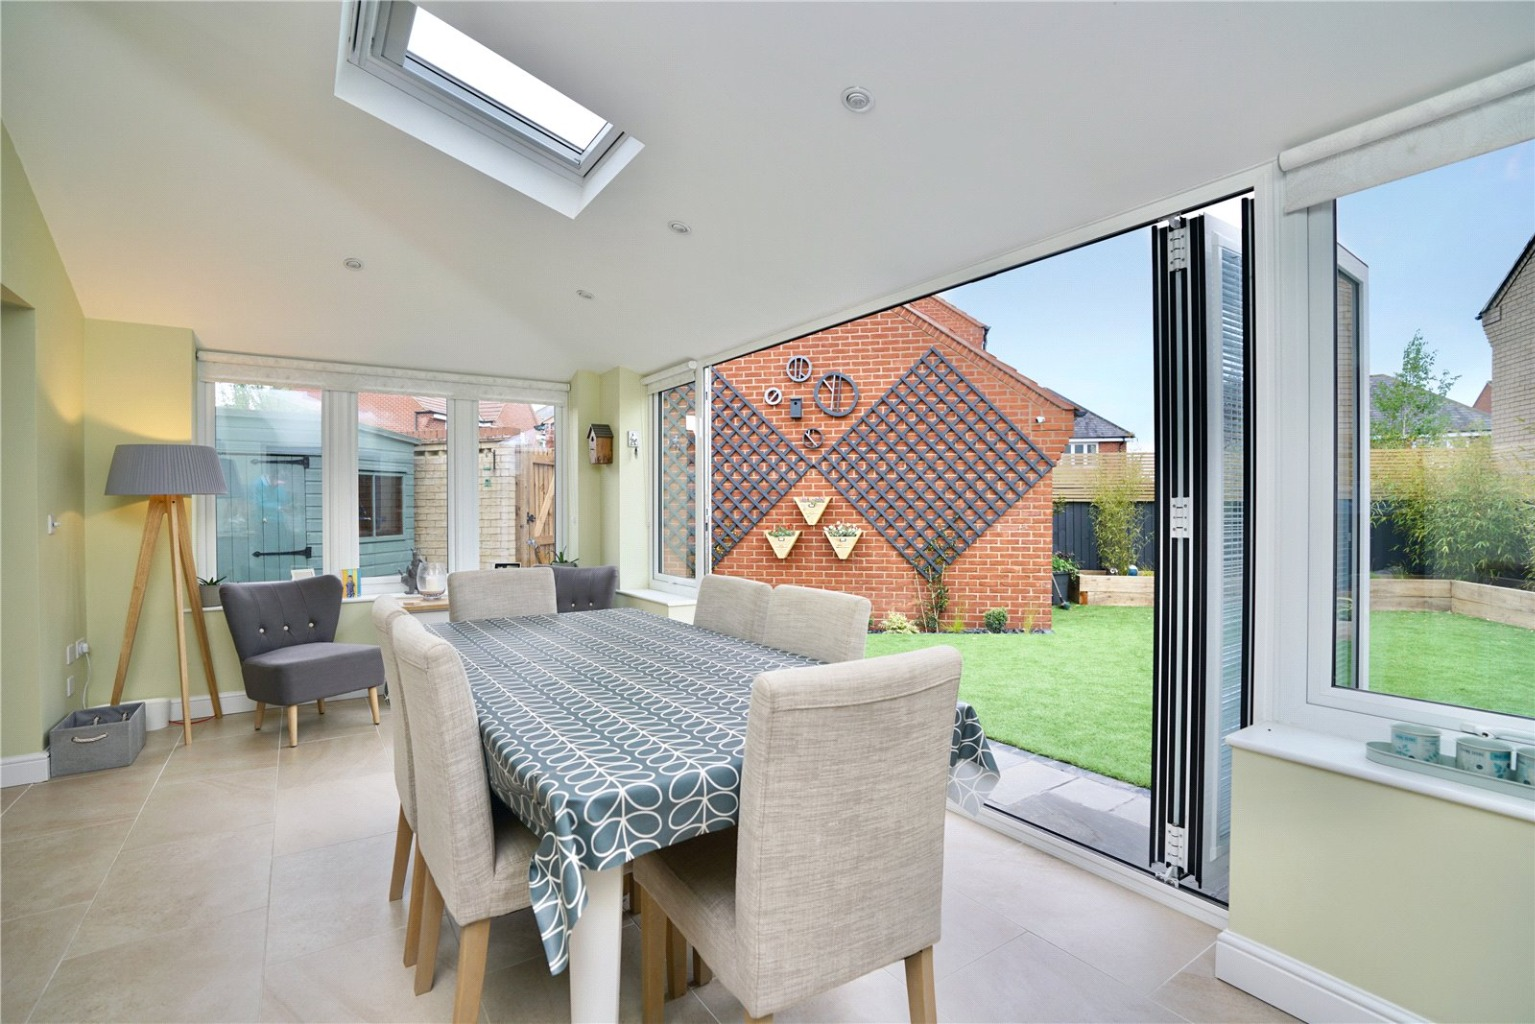 4 bed detached house for sale in Lannesbury Crescent, St. Neots  - Property Image 2